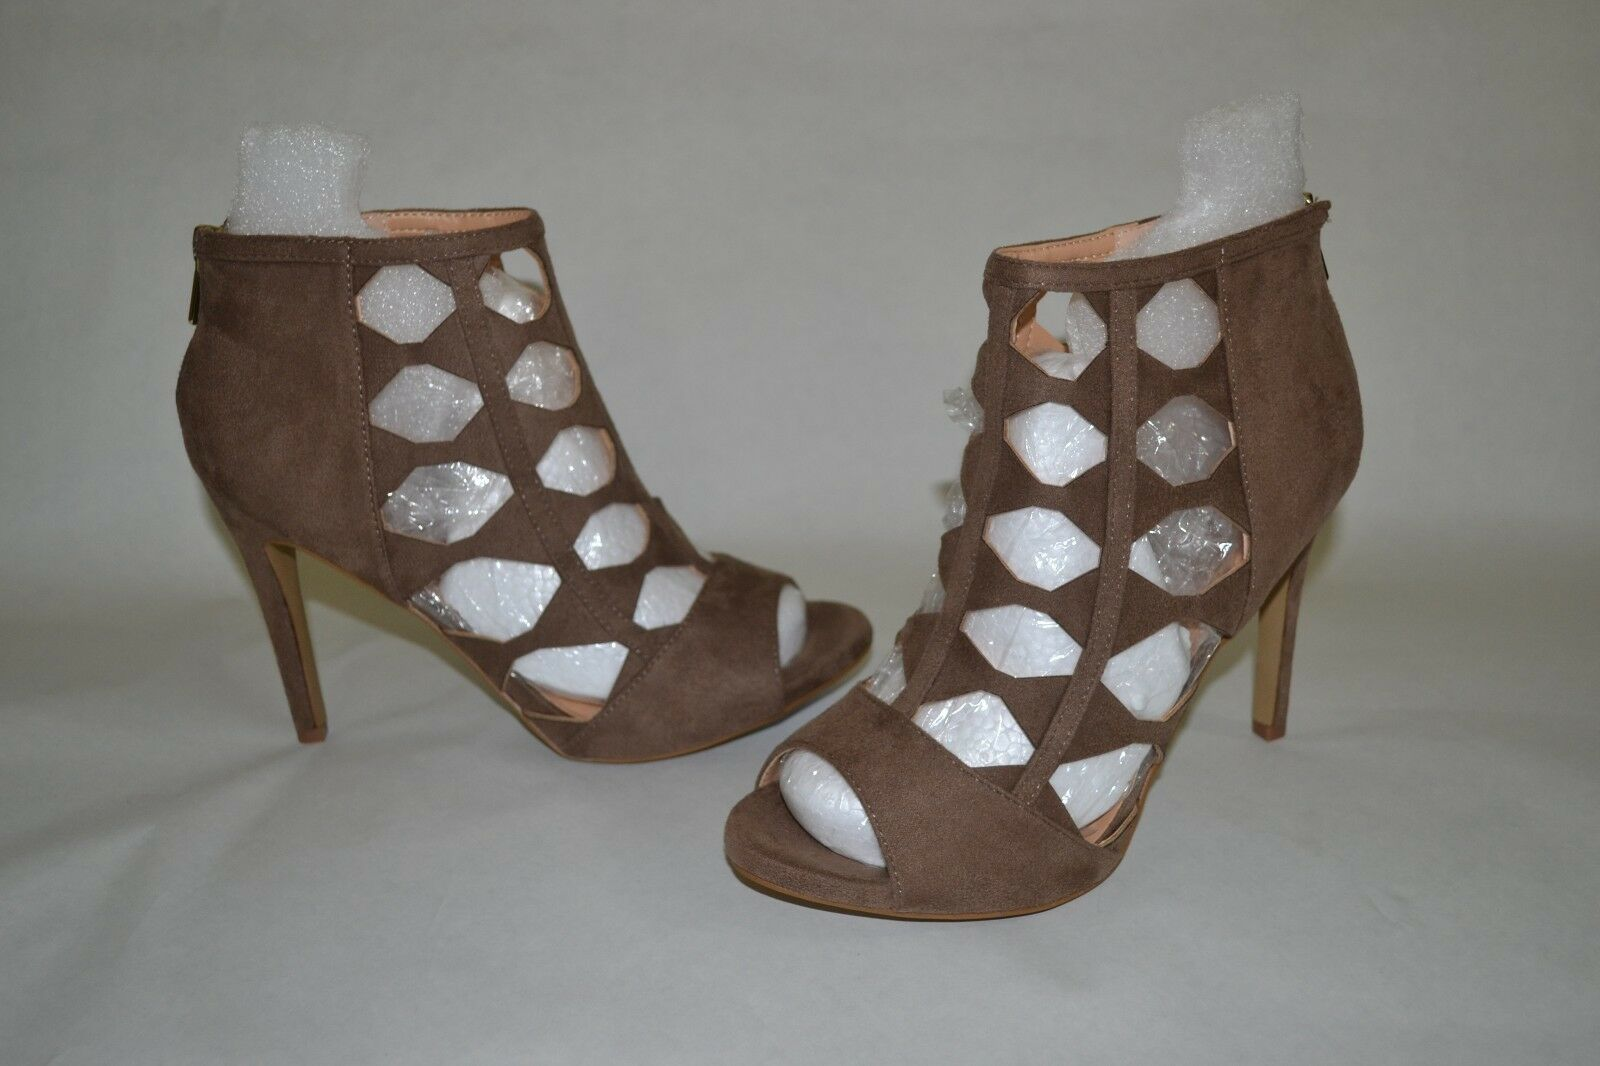 XOXO Colbie Suede Women's Size Shoes Color Brown/Taupe Size Women's 6.5 a1976b